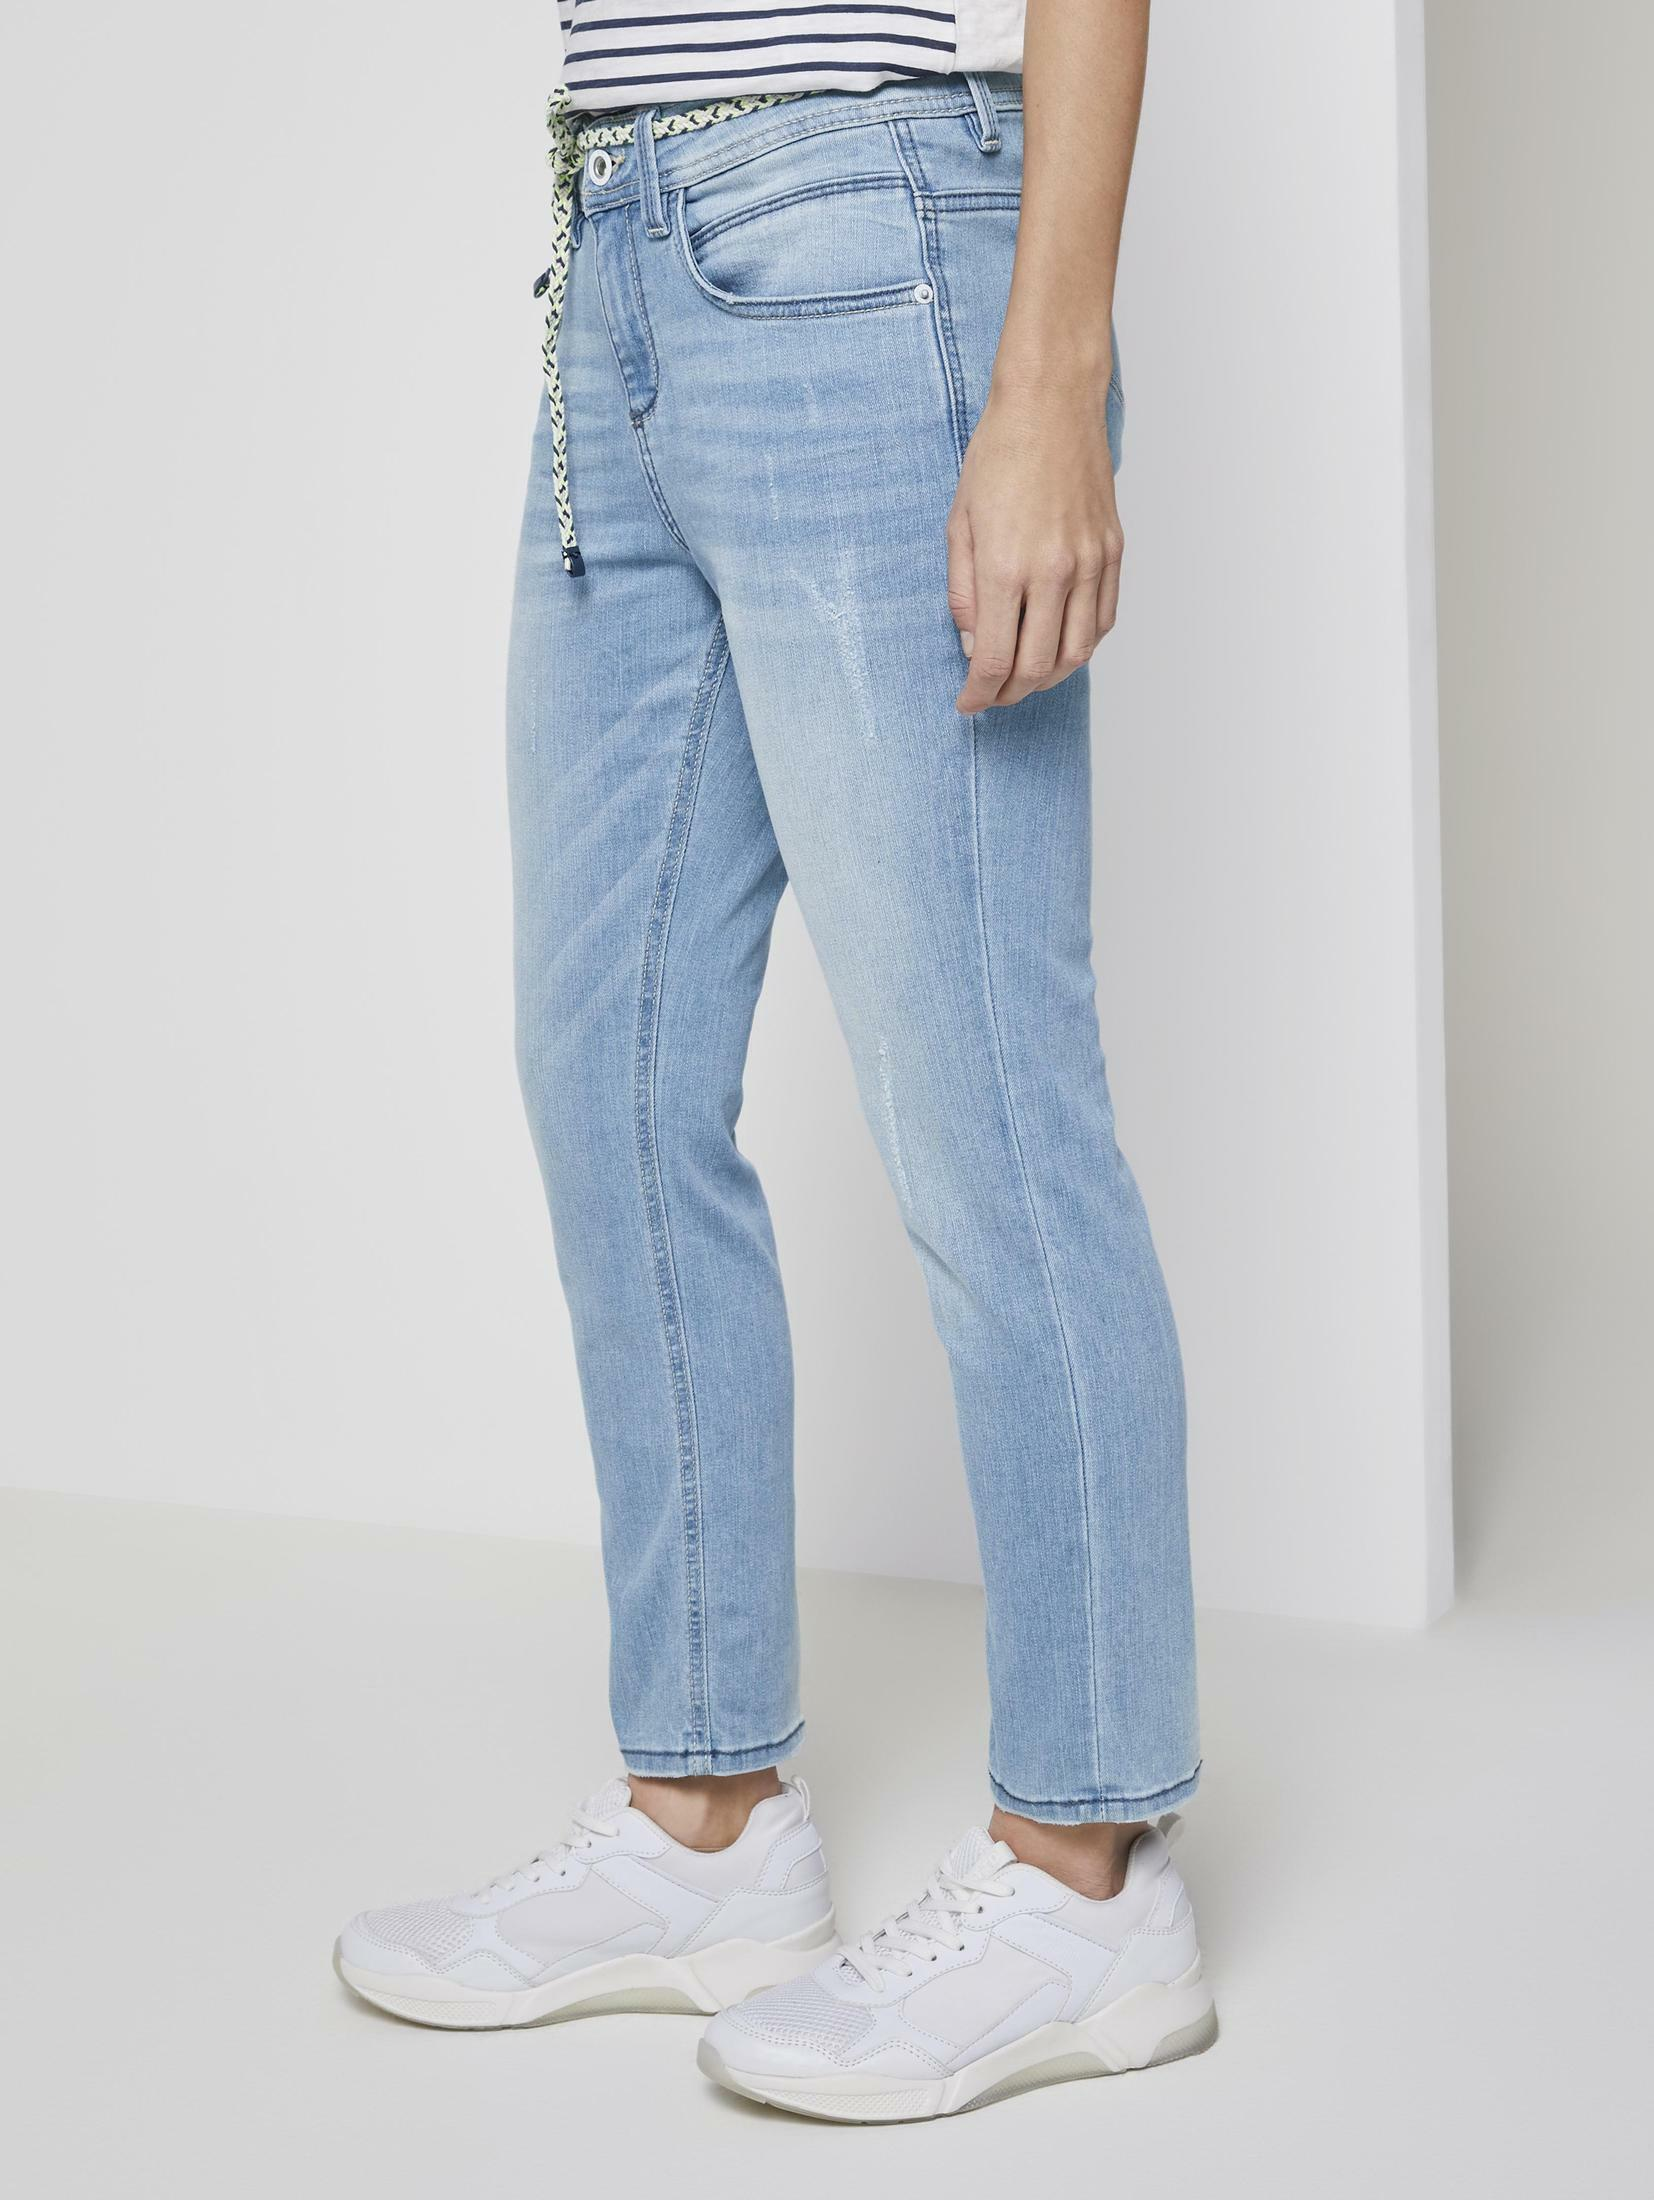 TOM TAILOR Jeans in Blauw denim ukfWi58h